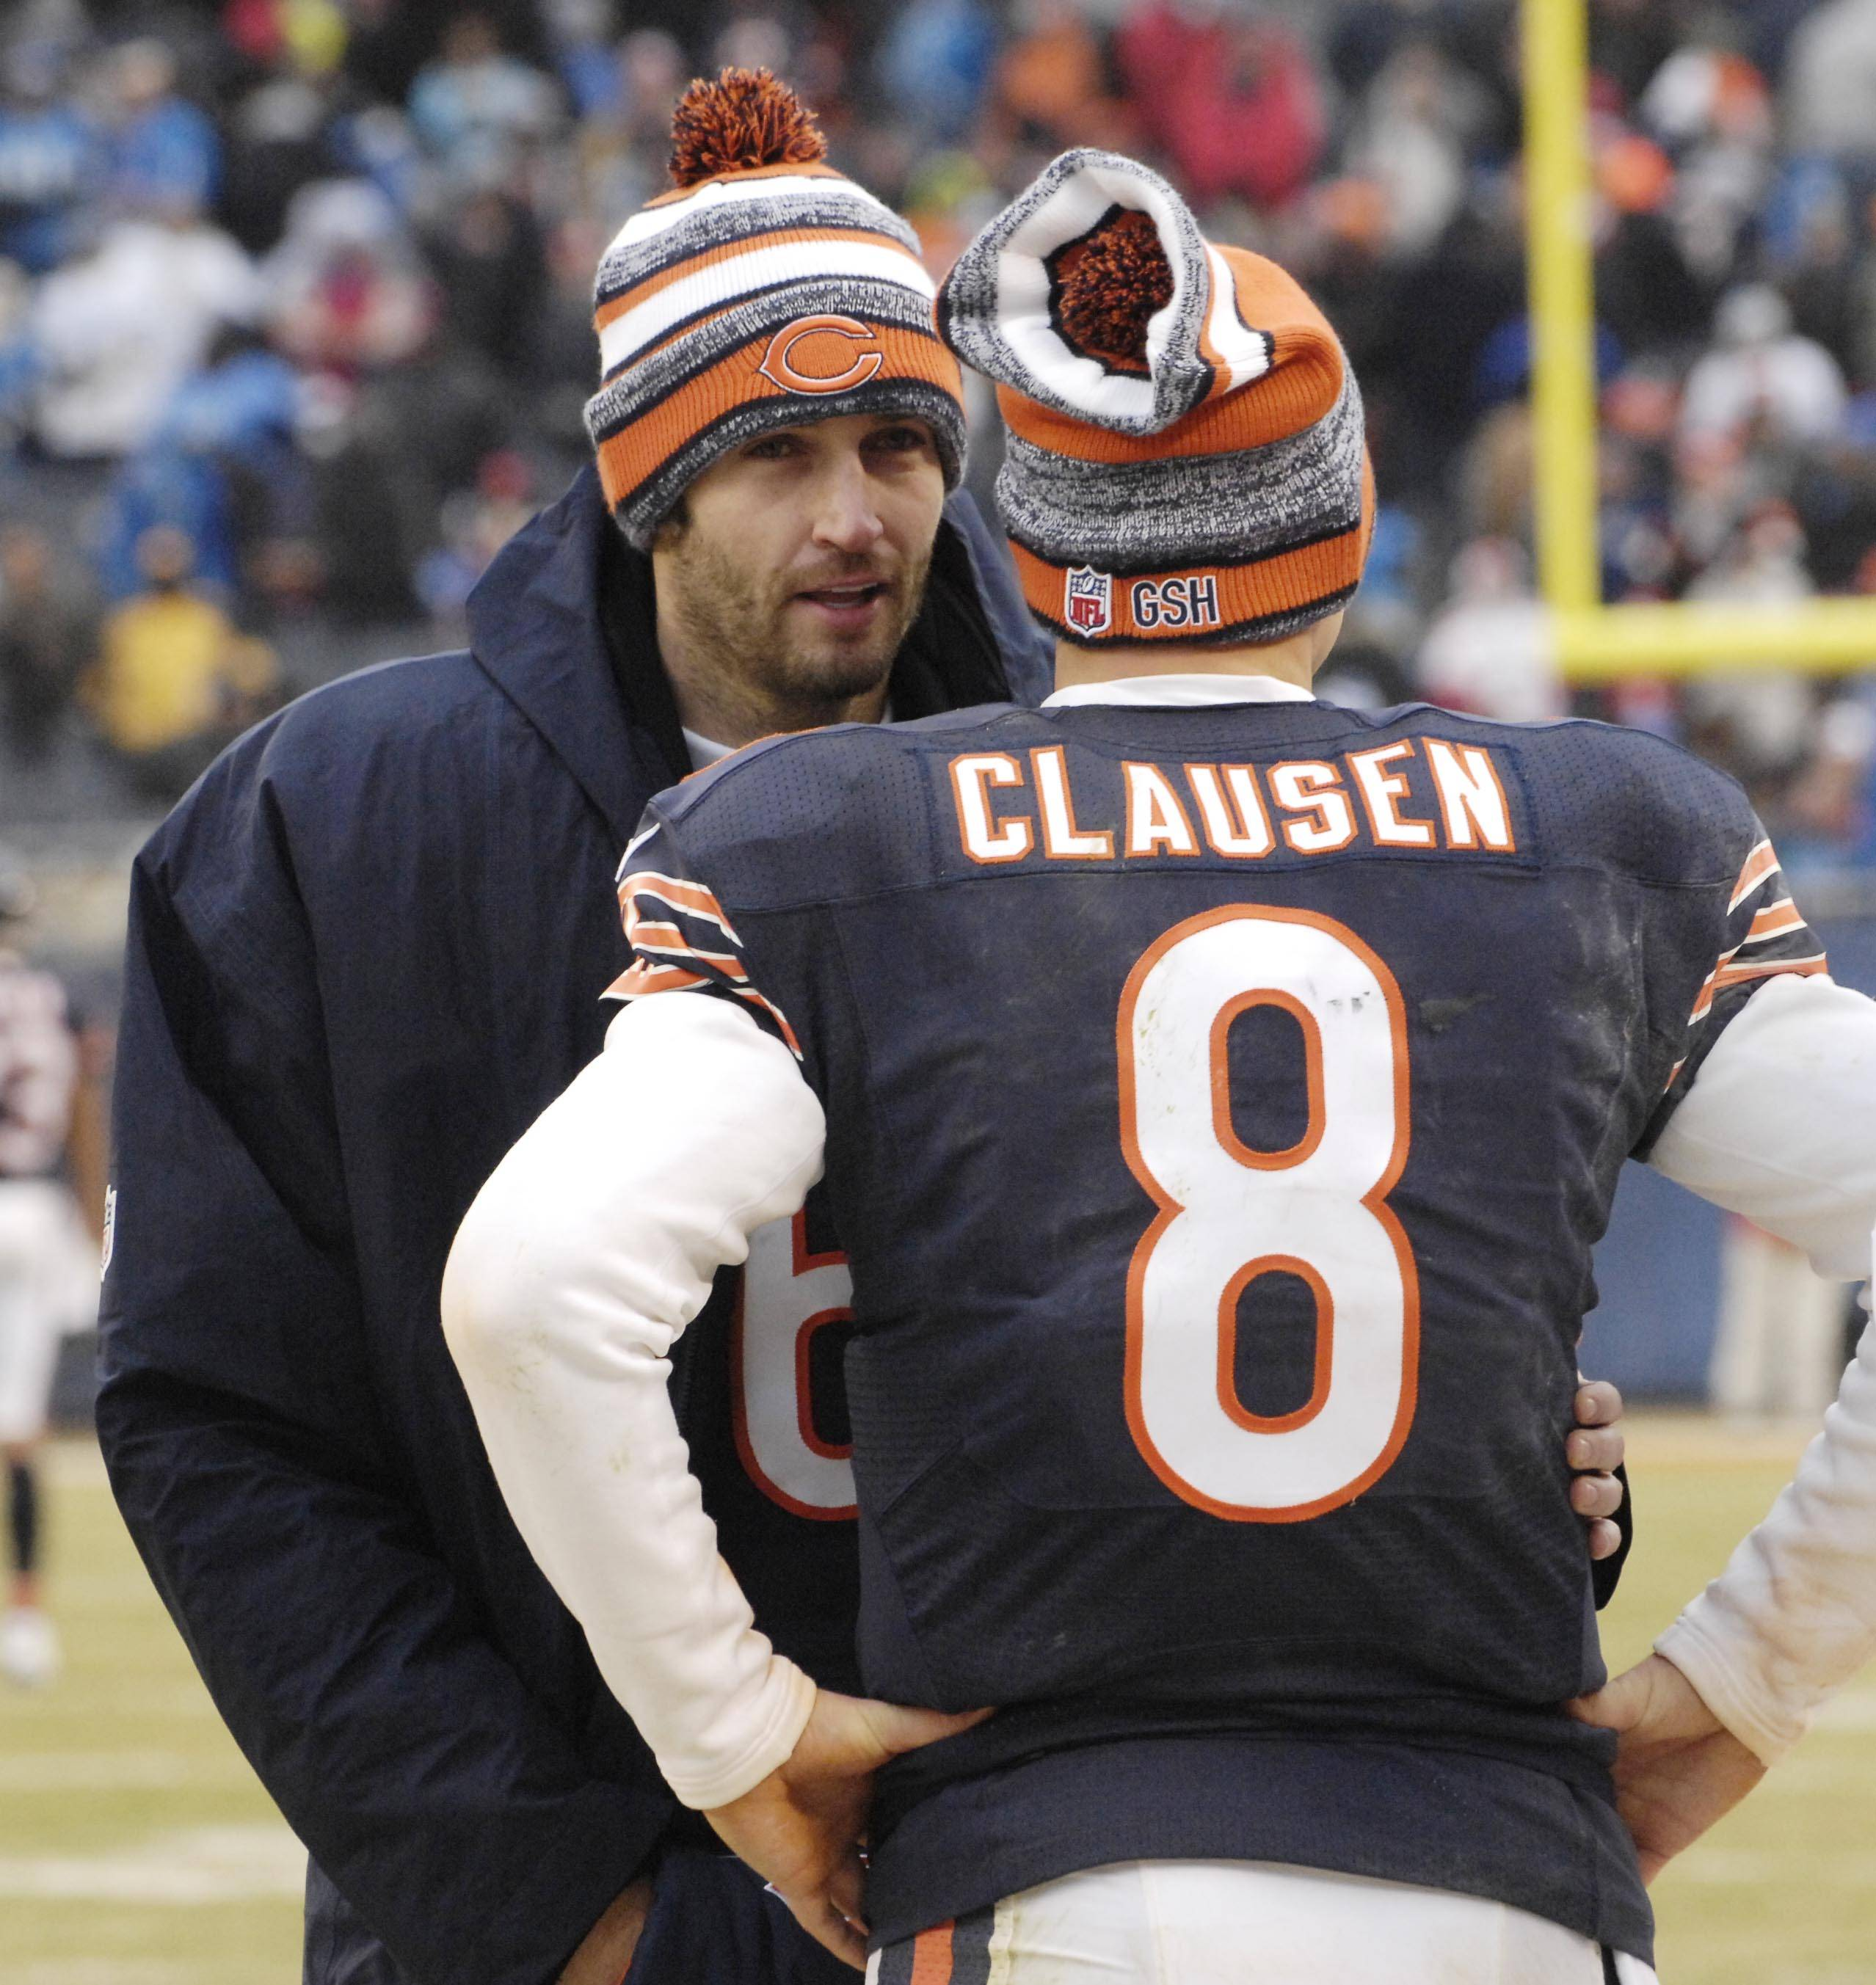 Bears quarterback Jay Cutler, back in the starter's role for the season finale at Minnesota, talks to Jimmy Clausen near the end of Sunday's loss to the Lions at Soldier Field.